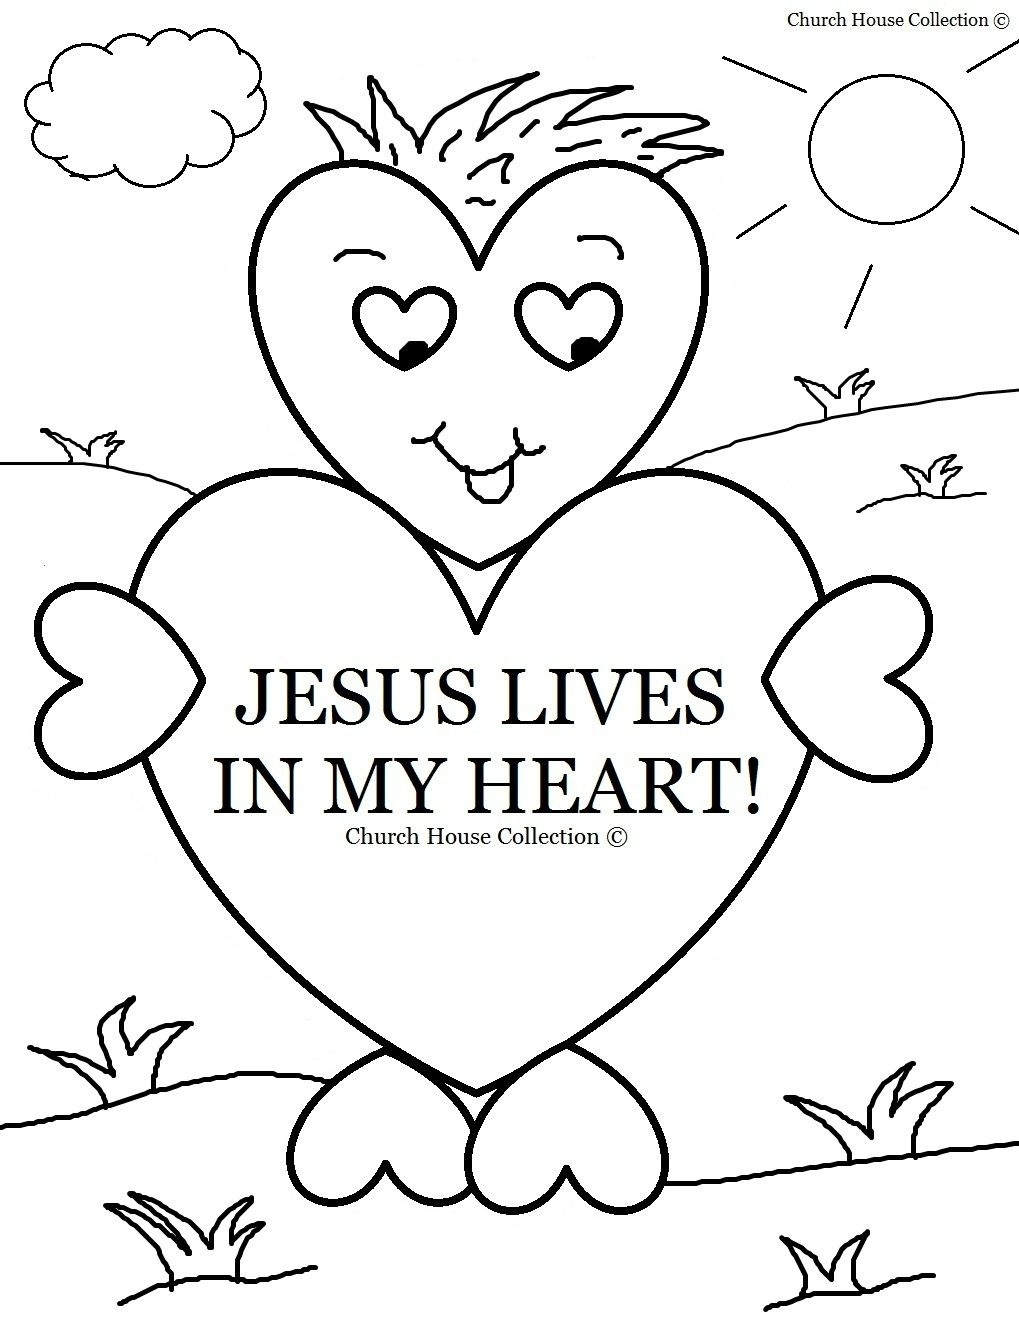 Coloring Book World ~ Free Sunday School Printables For Children - Free Printable Sunday School Coloring Sheets